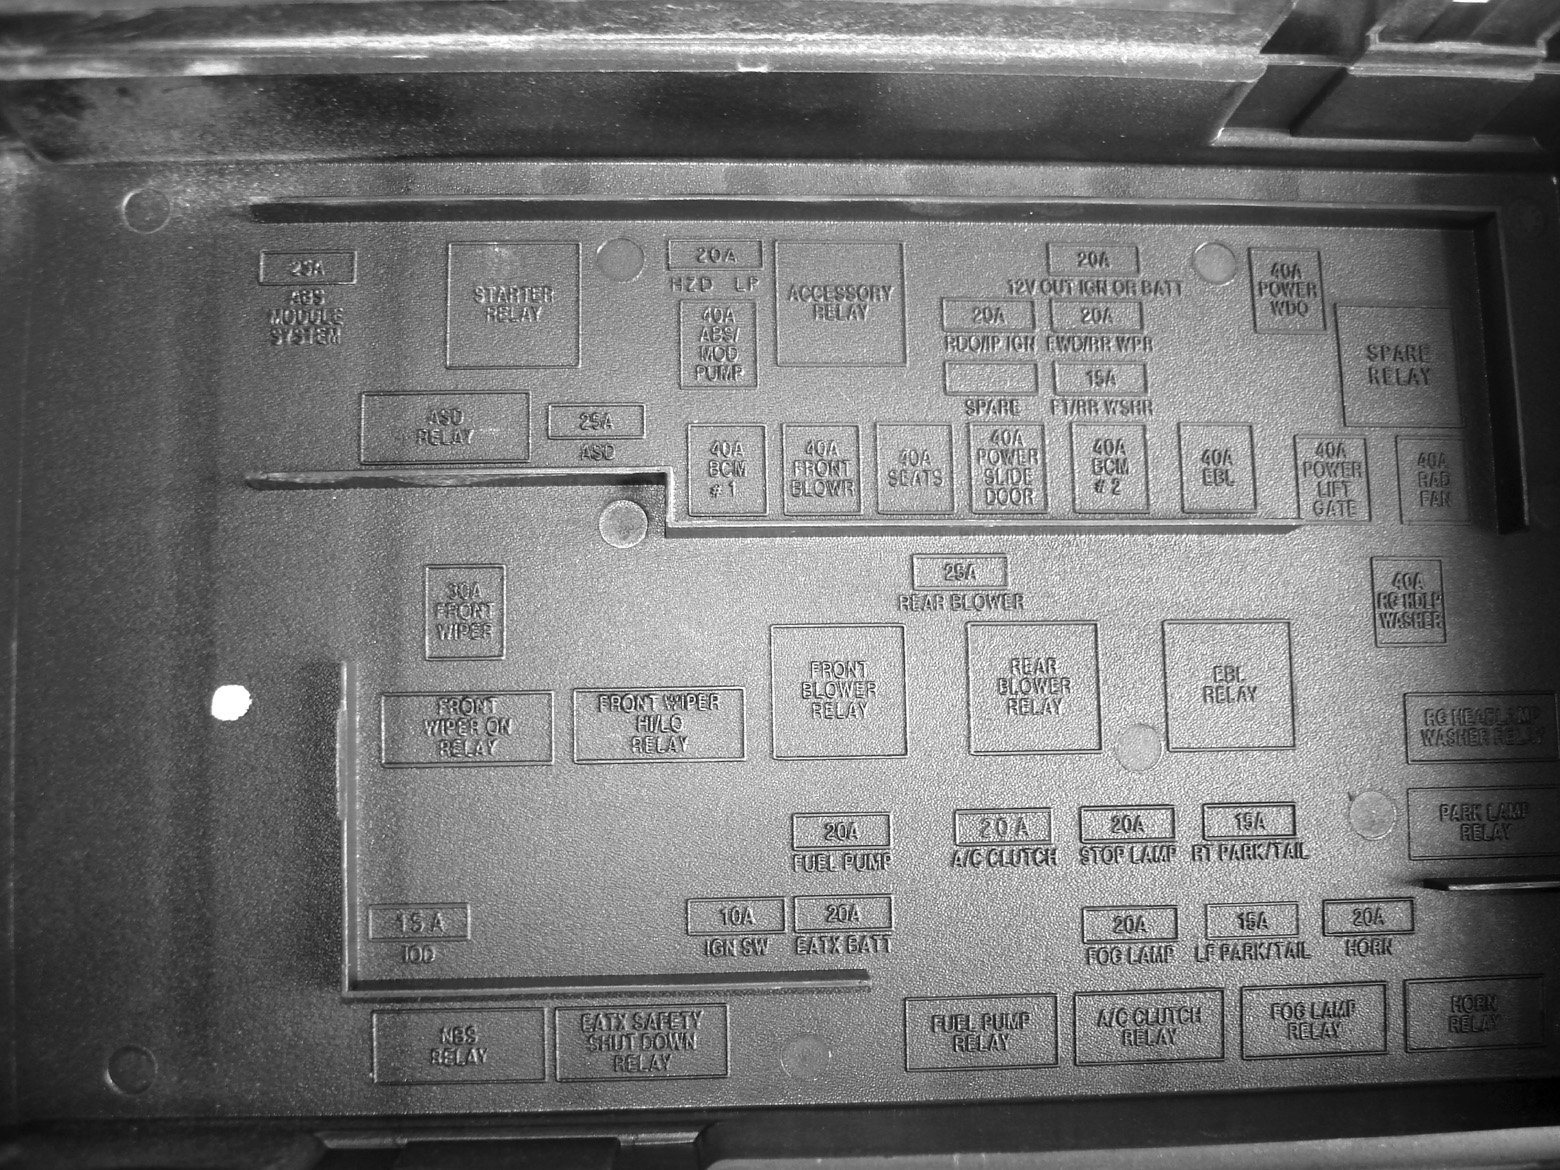 Fuse Box Dodge Grand Caravan 2008 Wiring Library 5e3f70757625384b3e6259ebee6eae2d Furthermore As Well 2006 Headl Diagram Together With